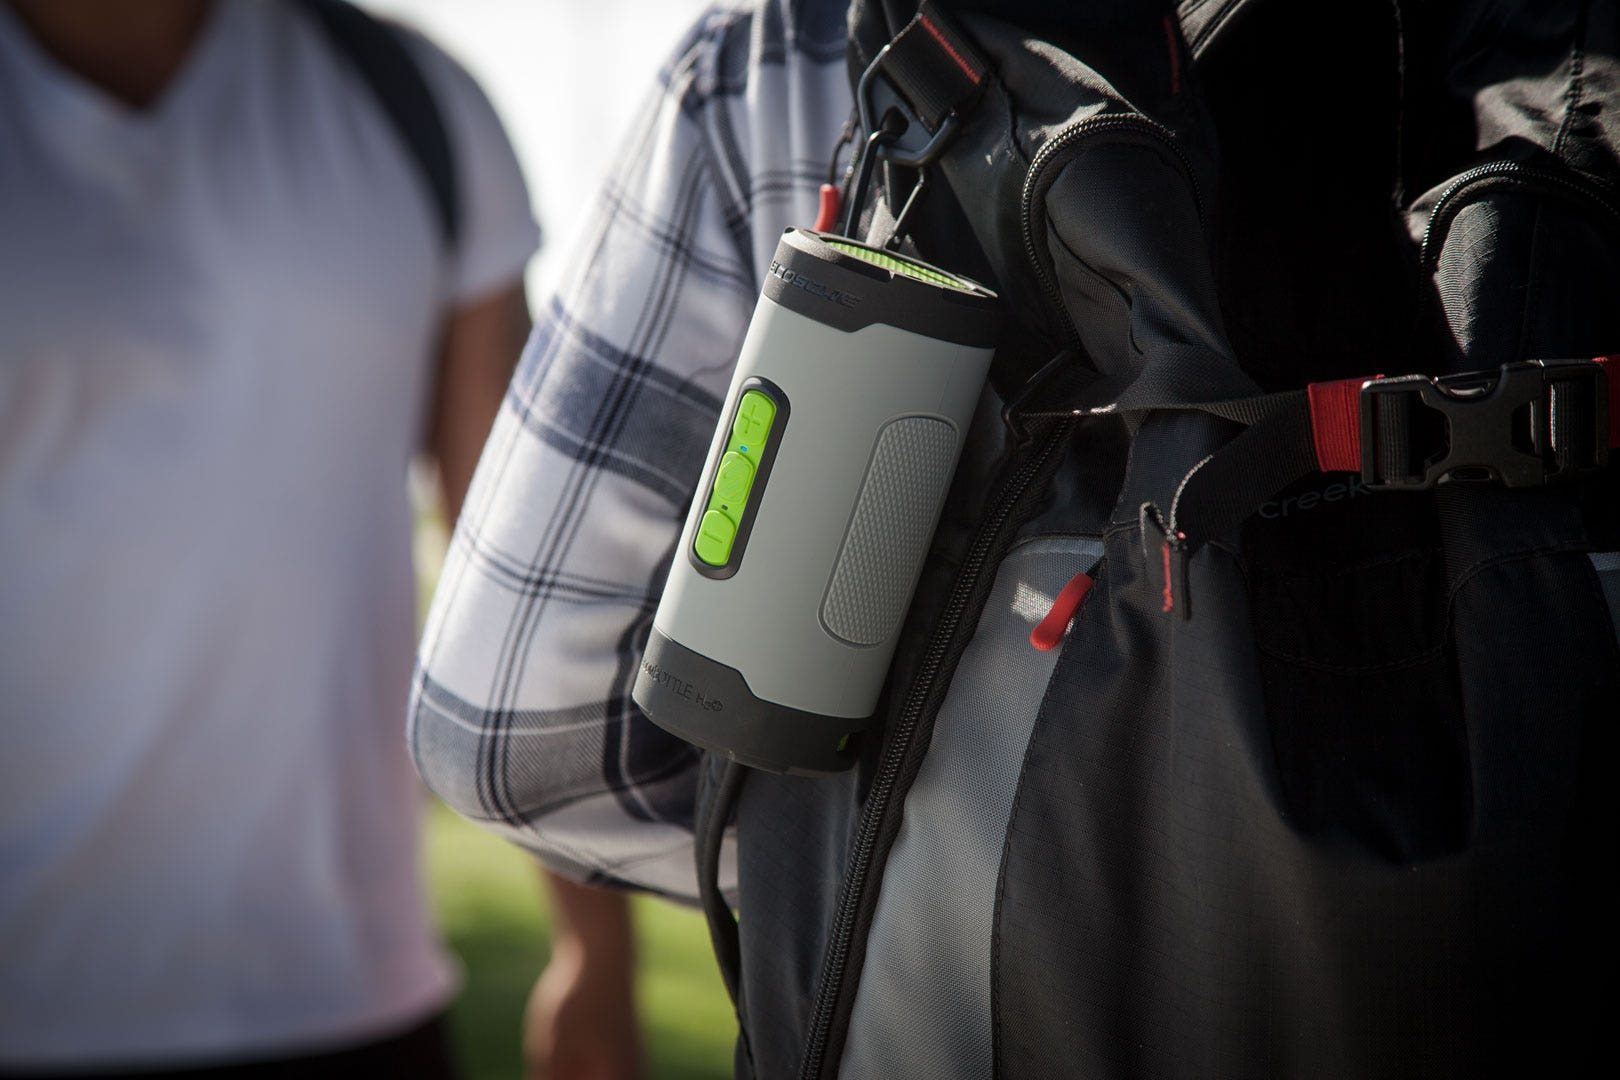 BoomBottle H2O+: Five Reasons to Run Out and Get One